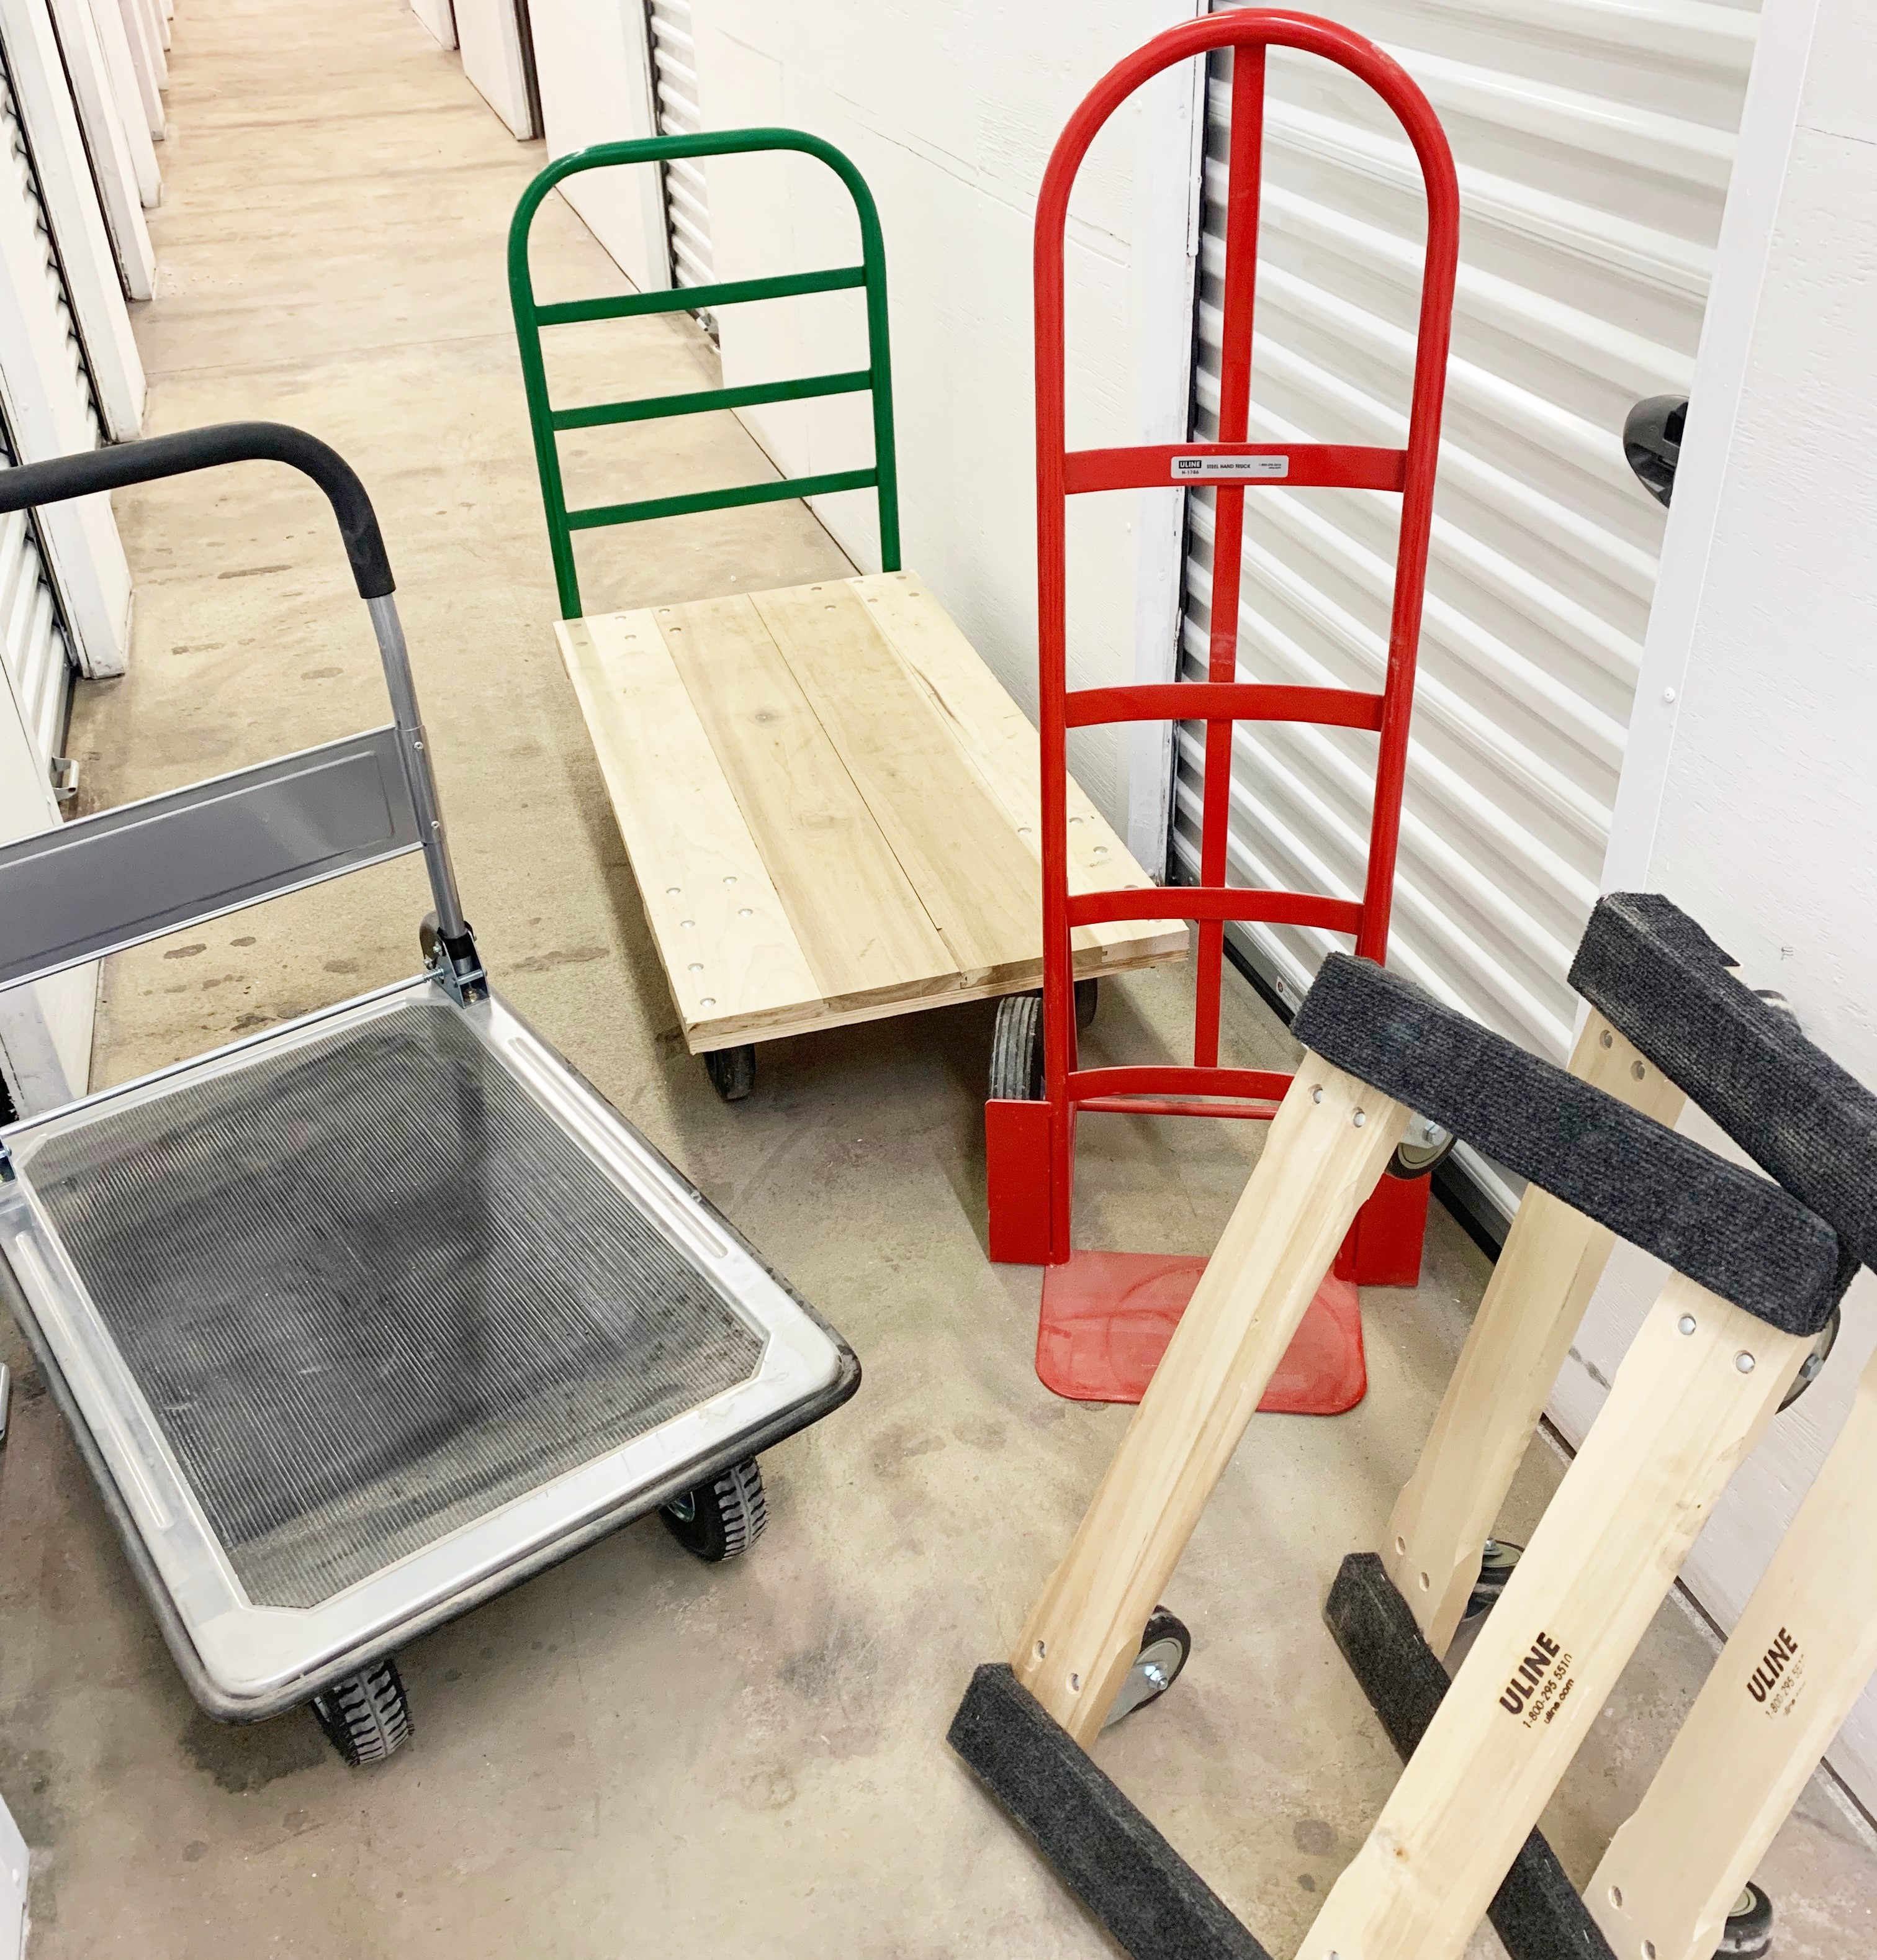 dollies and handcarts stored for use